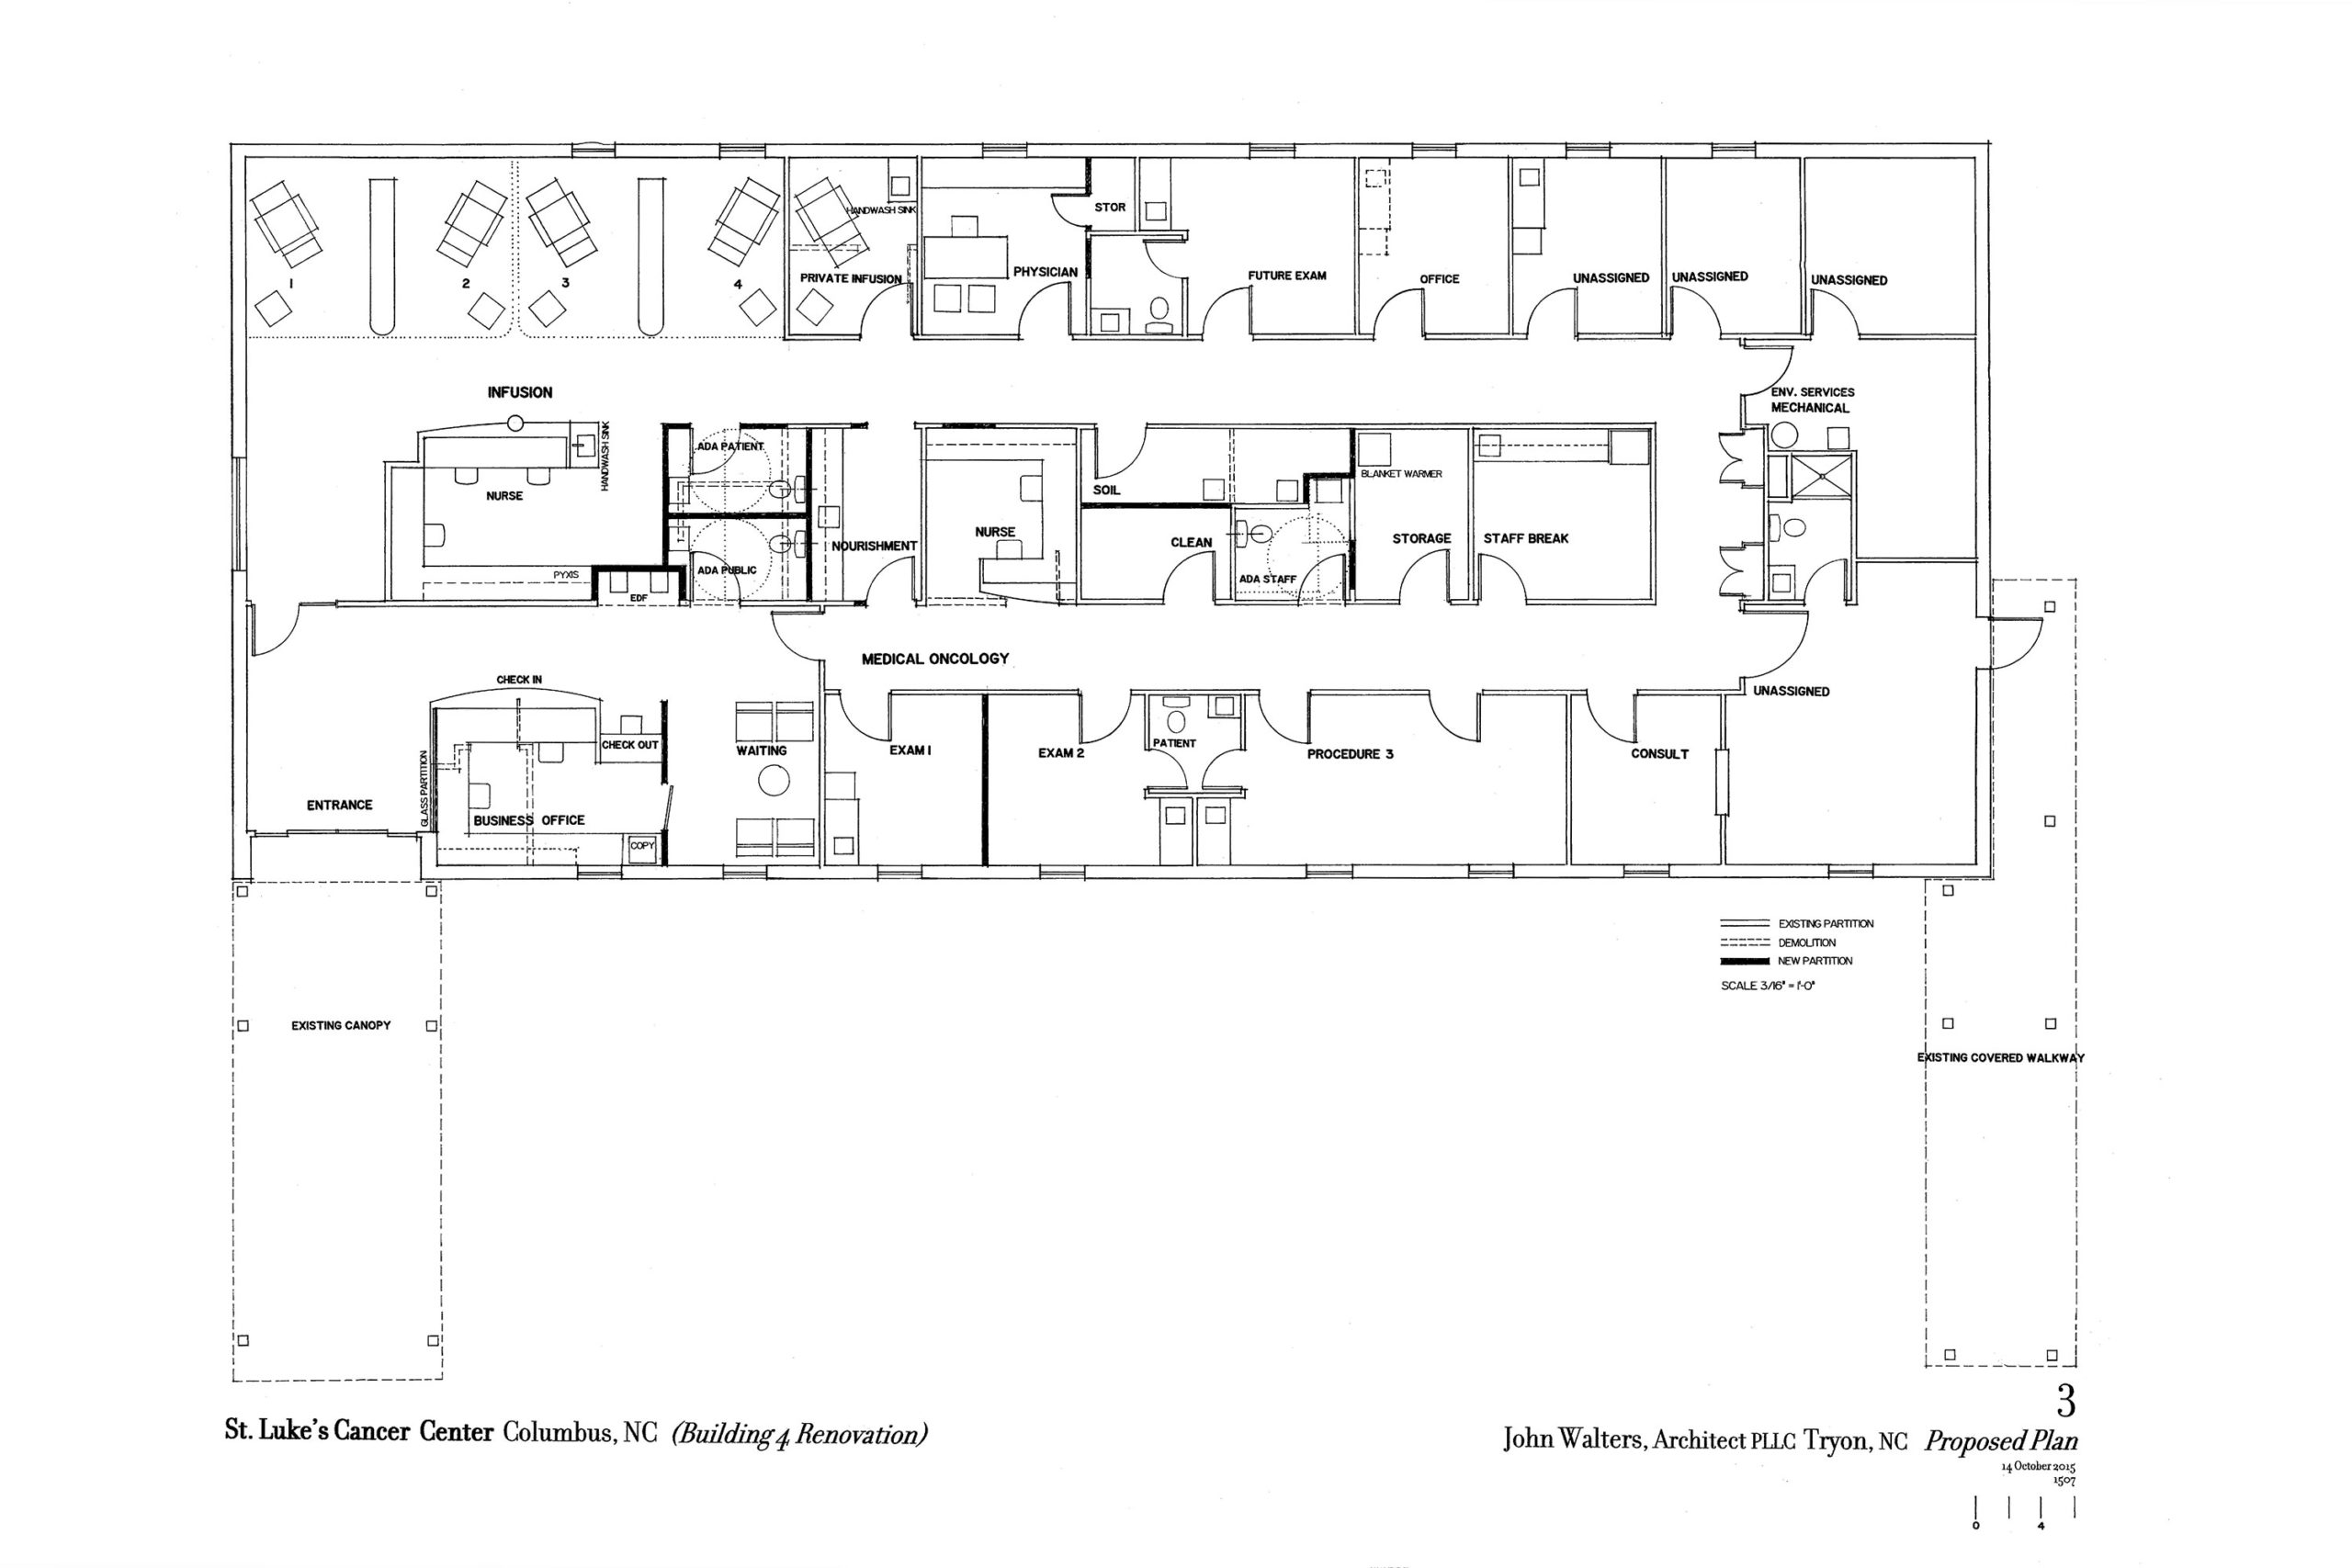 Floor plan of infusion center.